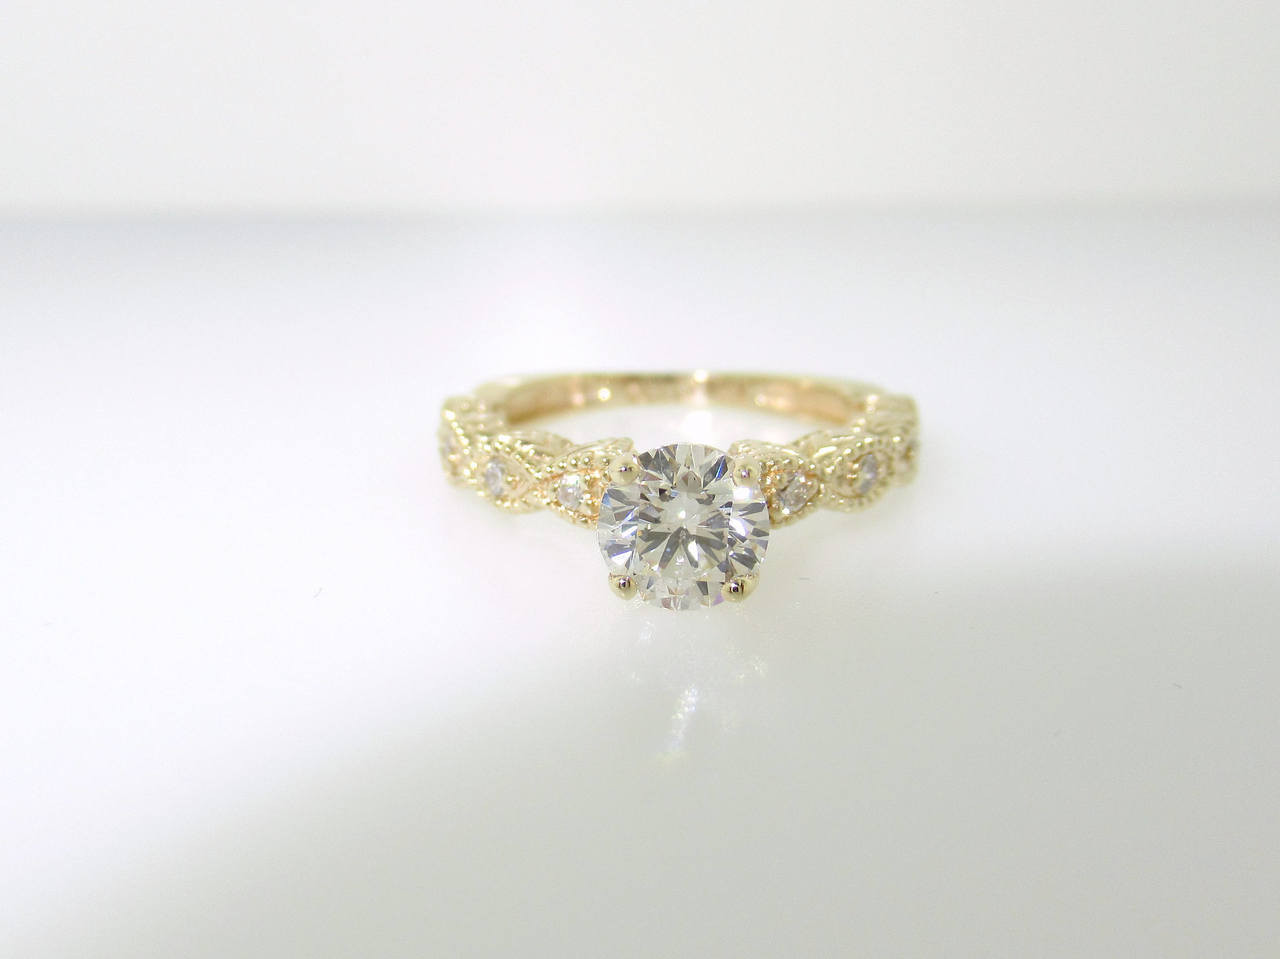 Vintage Engagement Ring Yellow Gold, Diamond Engagement Ring, Bridal Ring,  Vintage Wedding Ring 0.60 Carat GIA Certified Unique Handmade